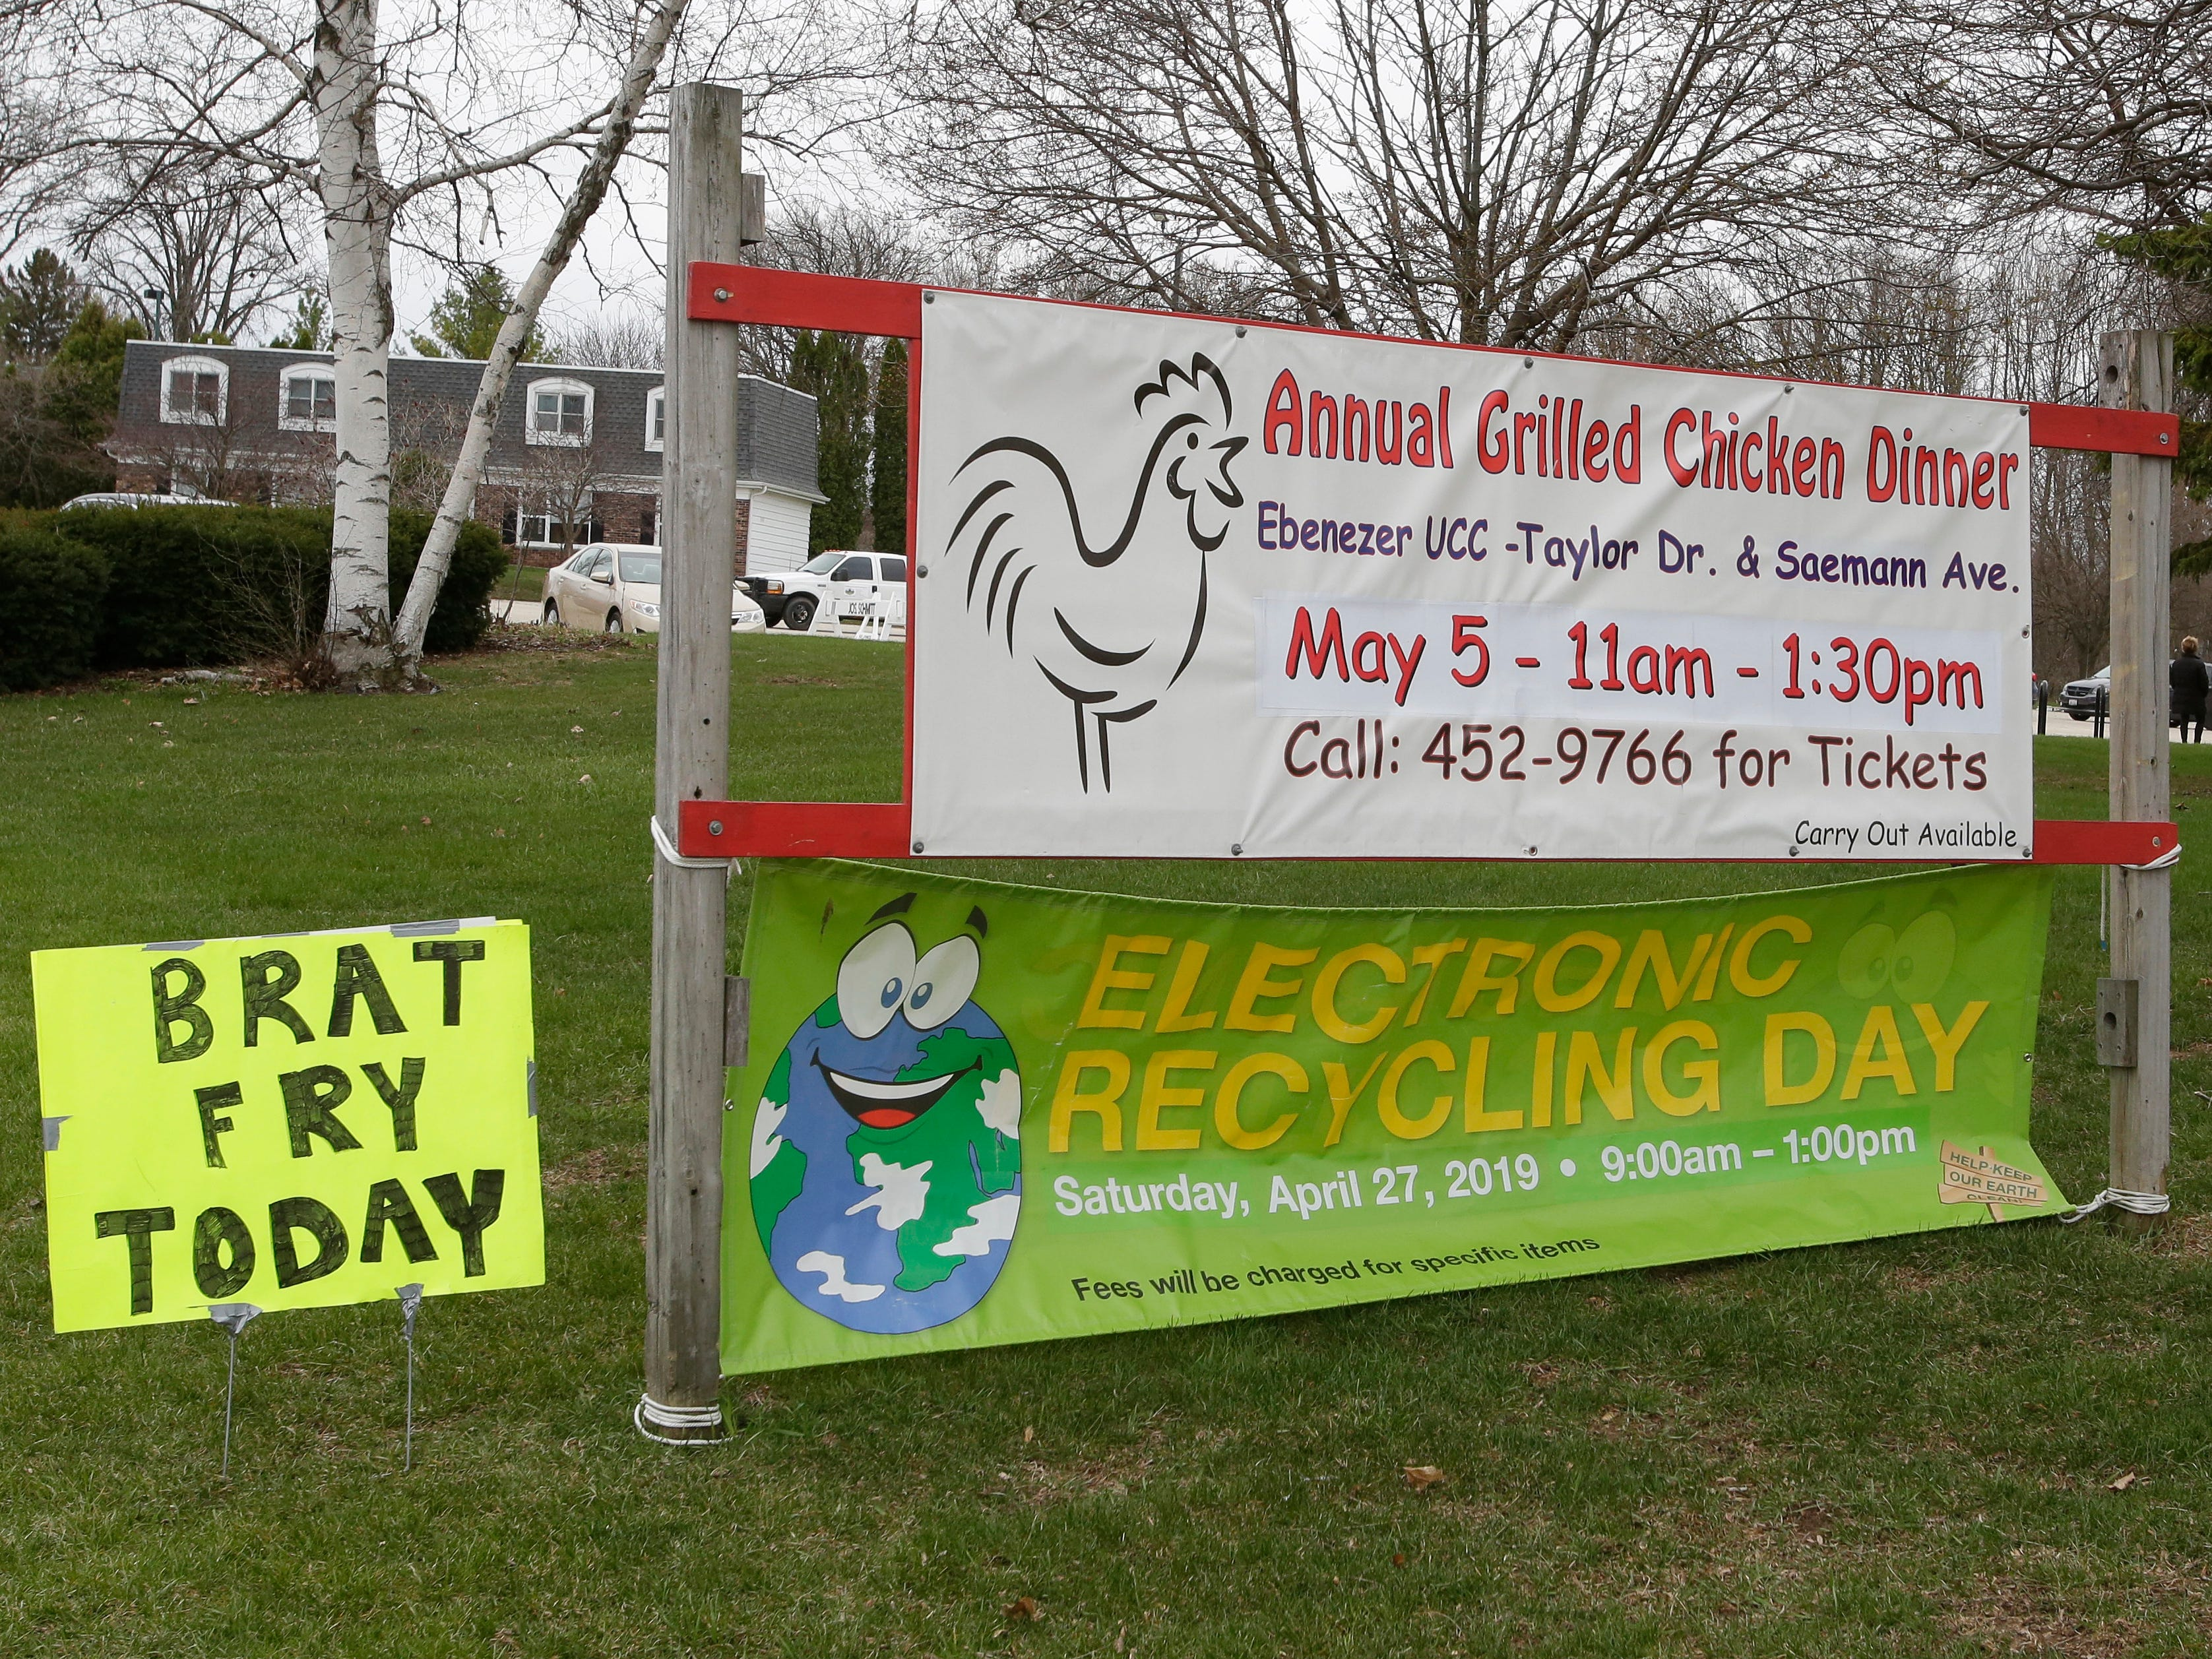 A sign for Electronics Recycling Day at Ebenezer United Church of Christ, Saturday, April 27, 2019, in Sheboygan, Wis. Most items could be just dropped off but some items had a fee for the recycling.